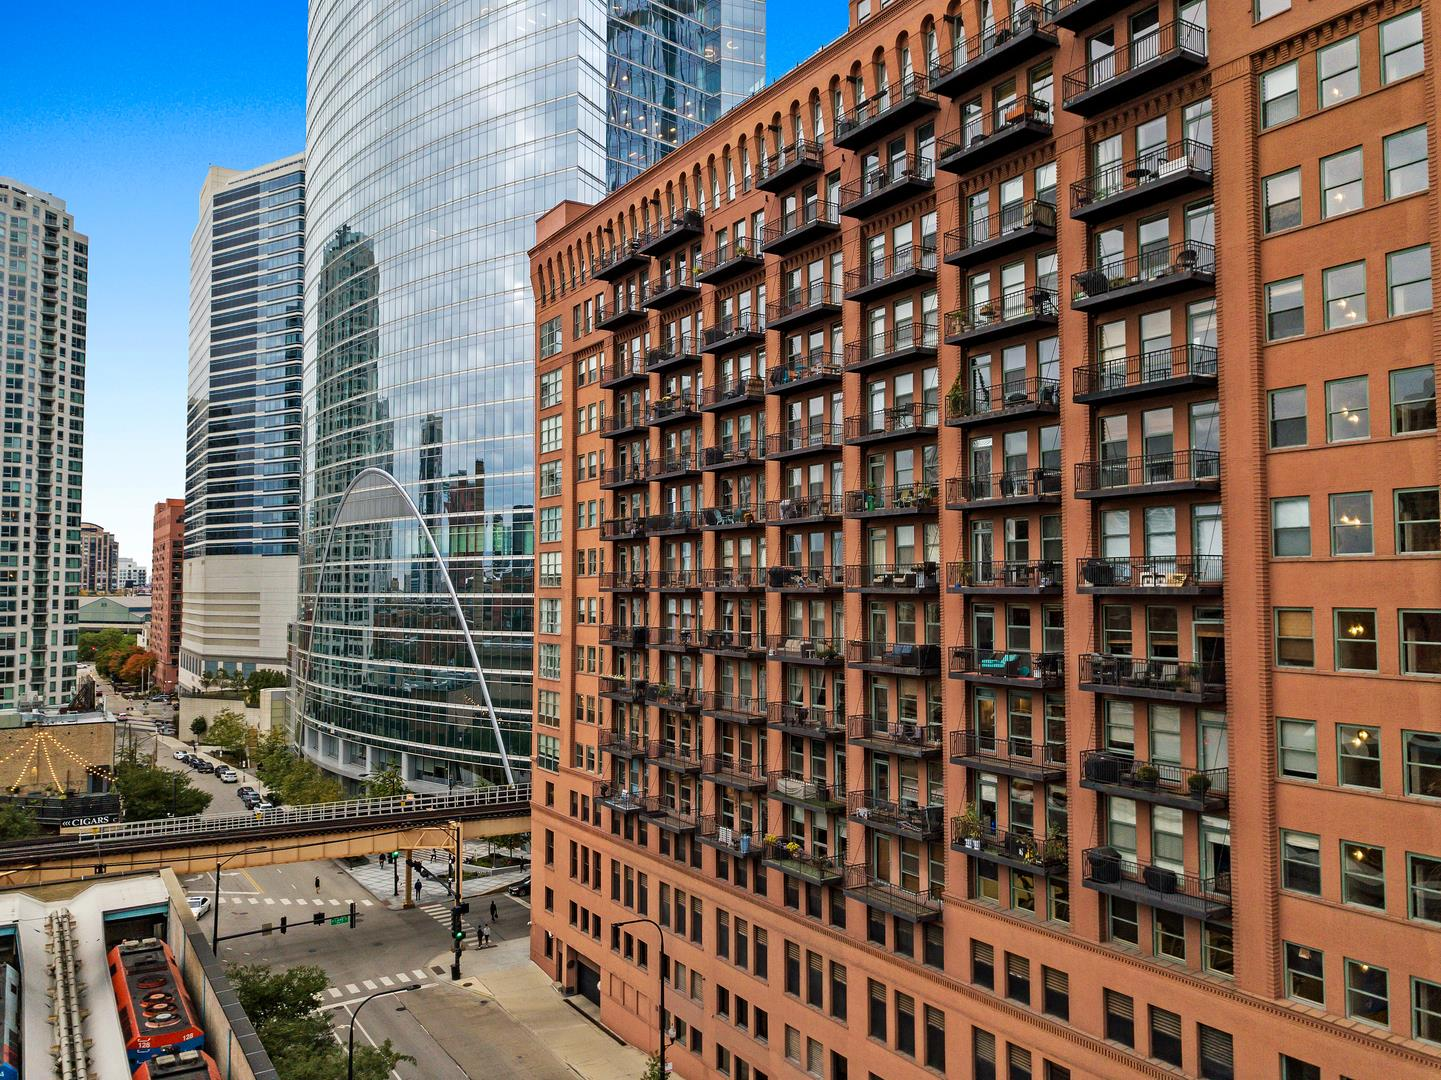 165 N CANAL Street #1415, Chicago, IL 60606 - #: 10893932